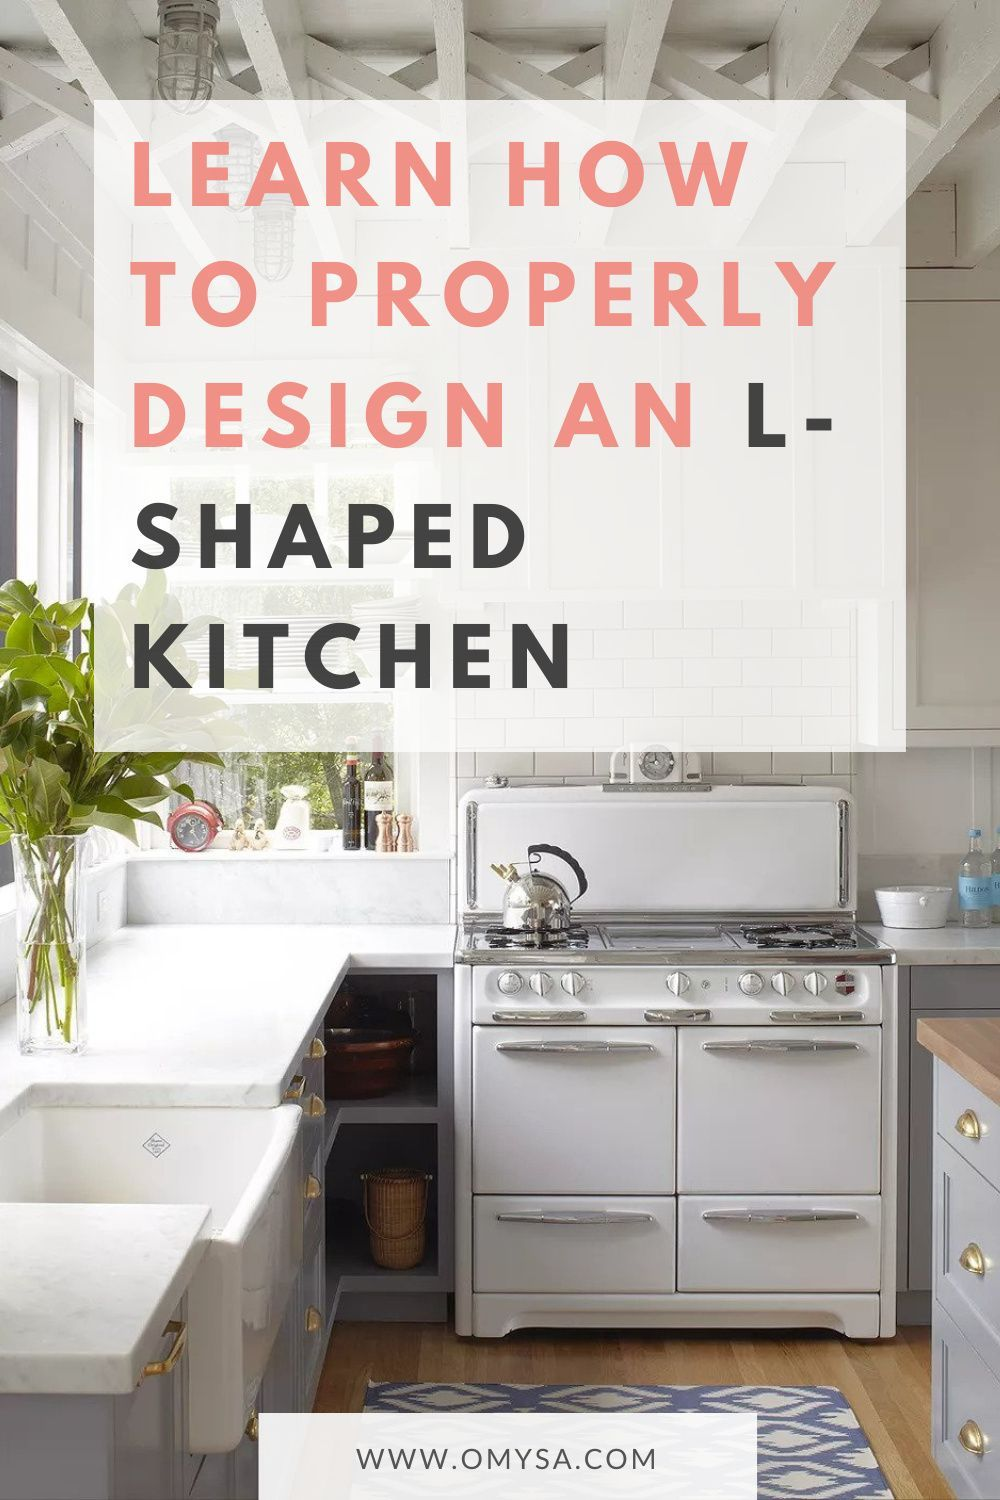 L Shaped Kitchen Layout Will Dominate In 2021 In 2021 Kitchen Layout L Shaped Kitchen Kitchen Floor Plans